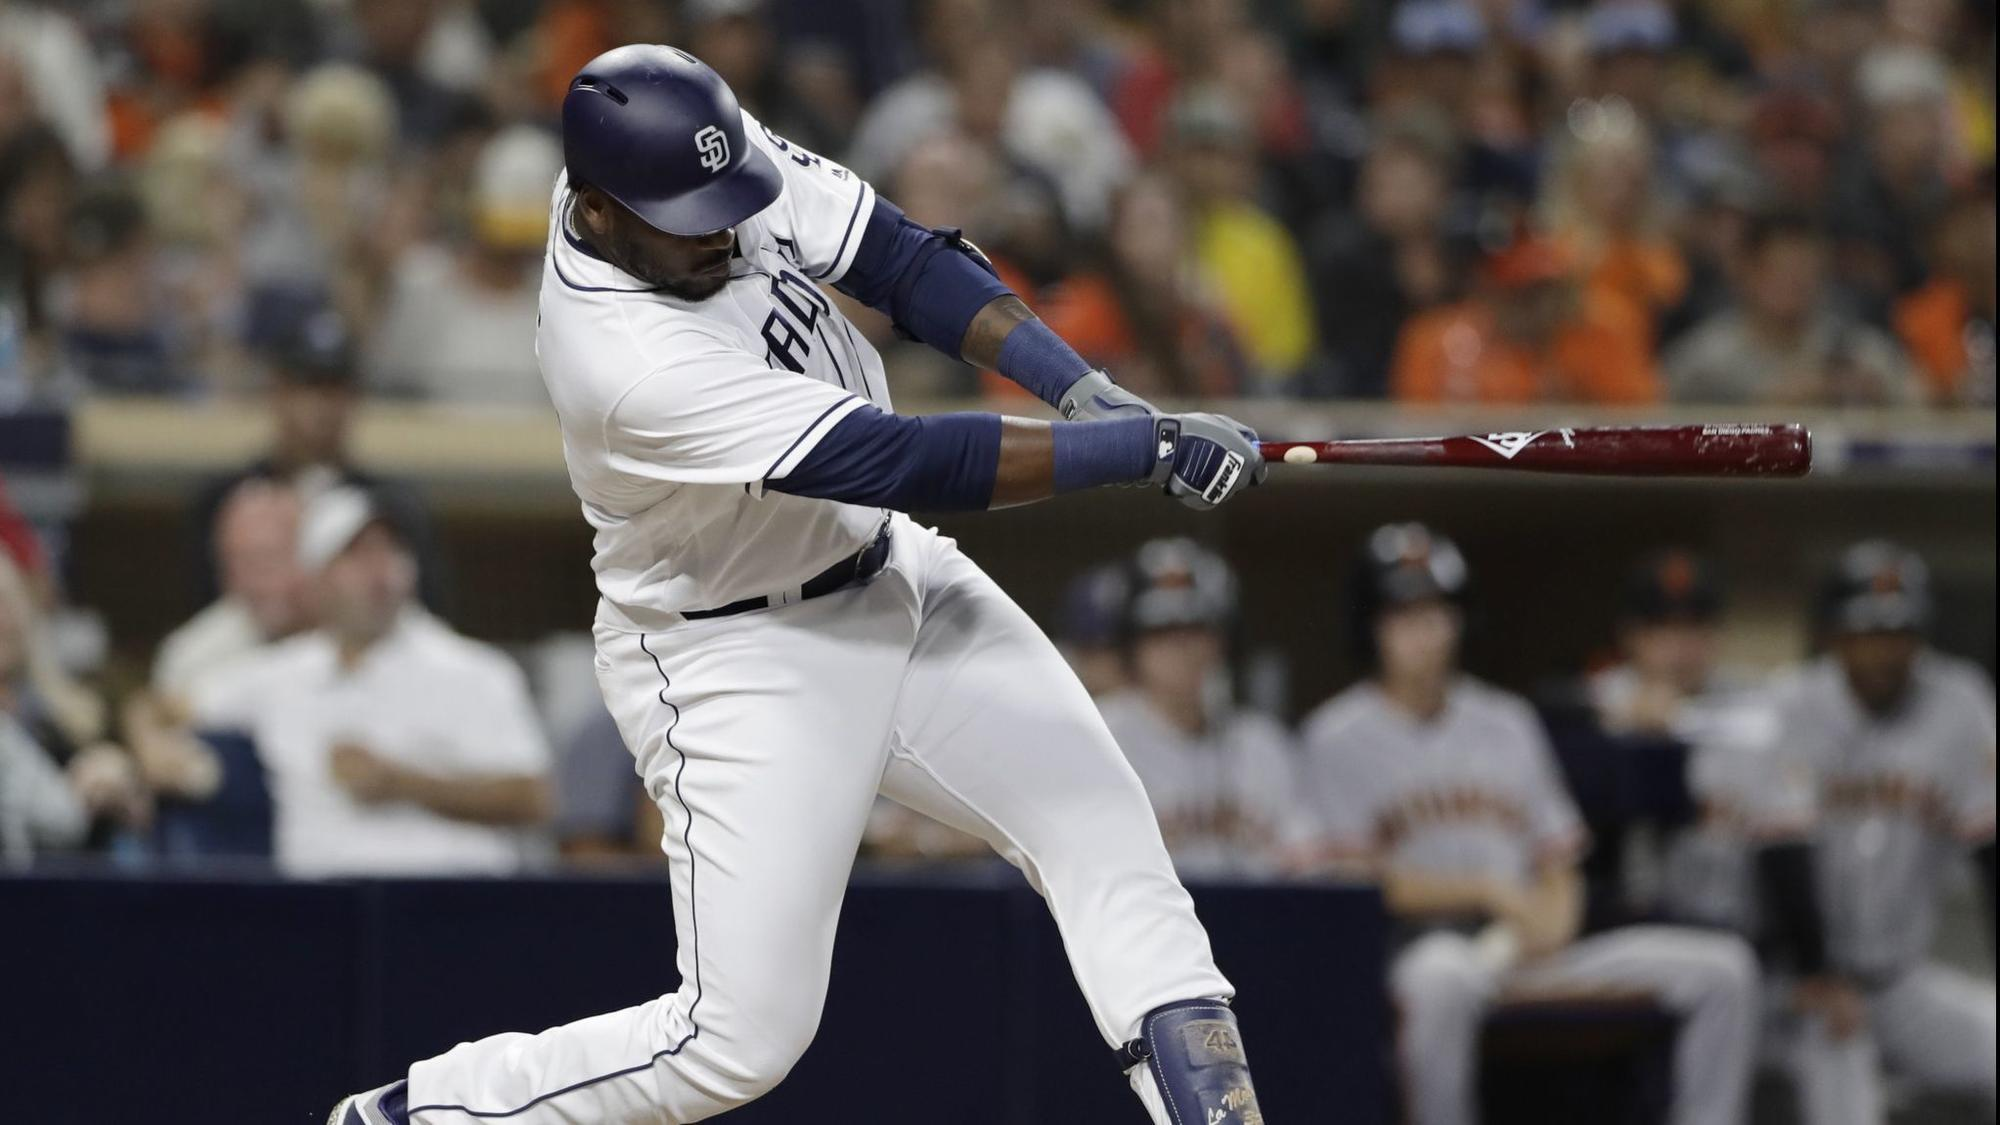 Sd-sp-padres-franmil-reyes-stance-crouch-hitting-streak-0922